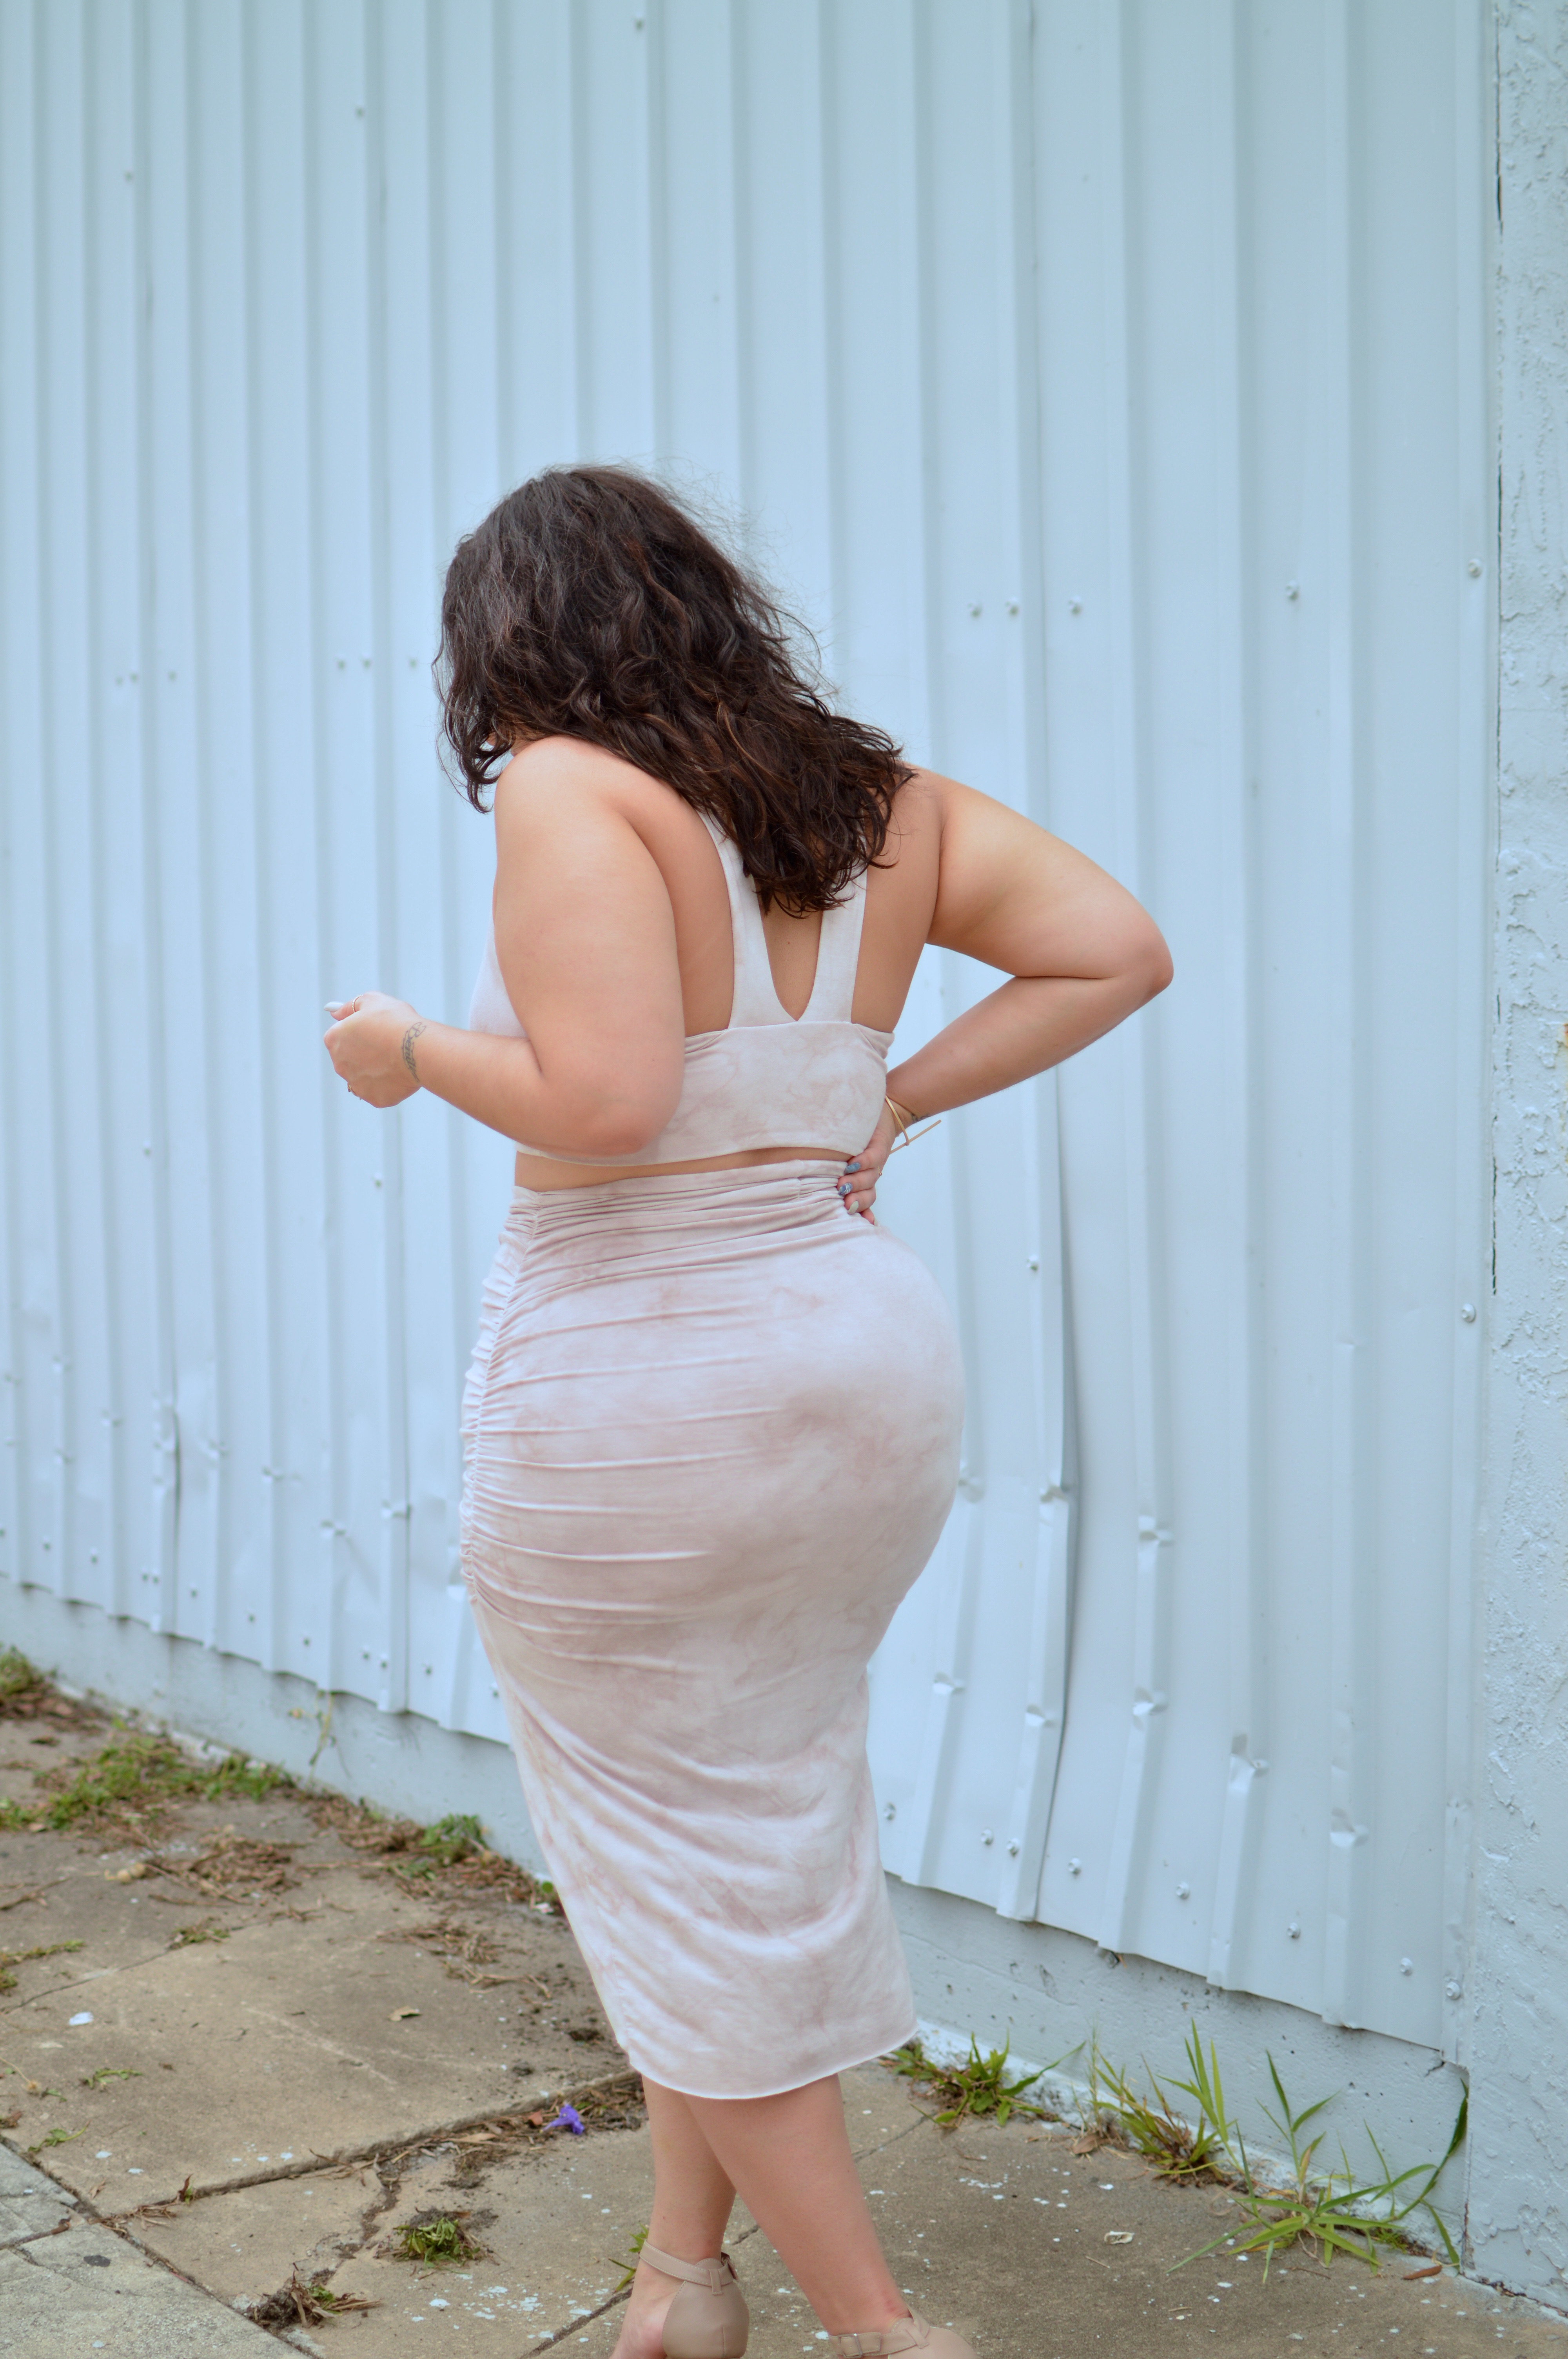 Real up skirt pastel 2 - 3 part 3